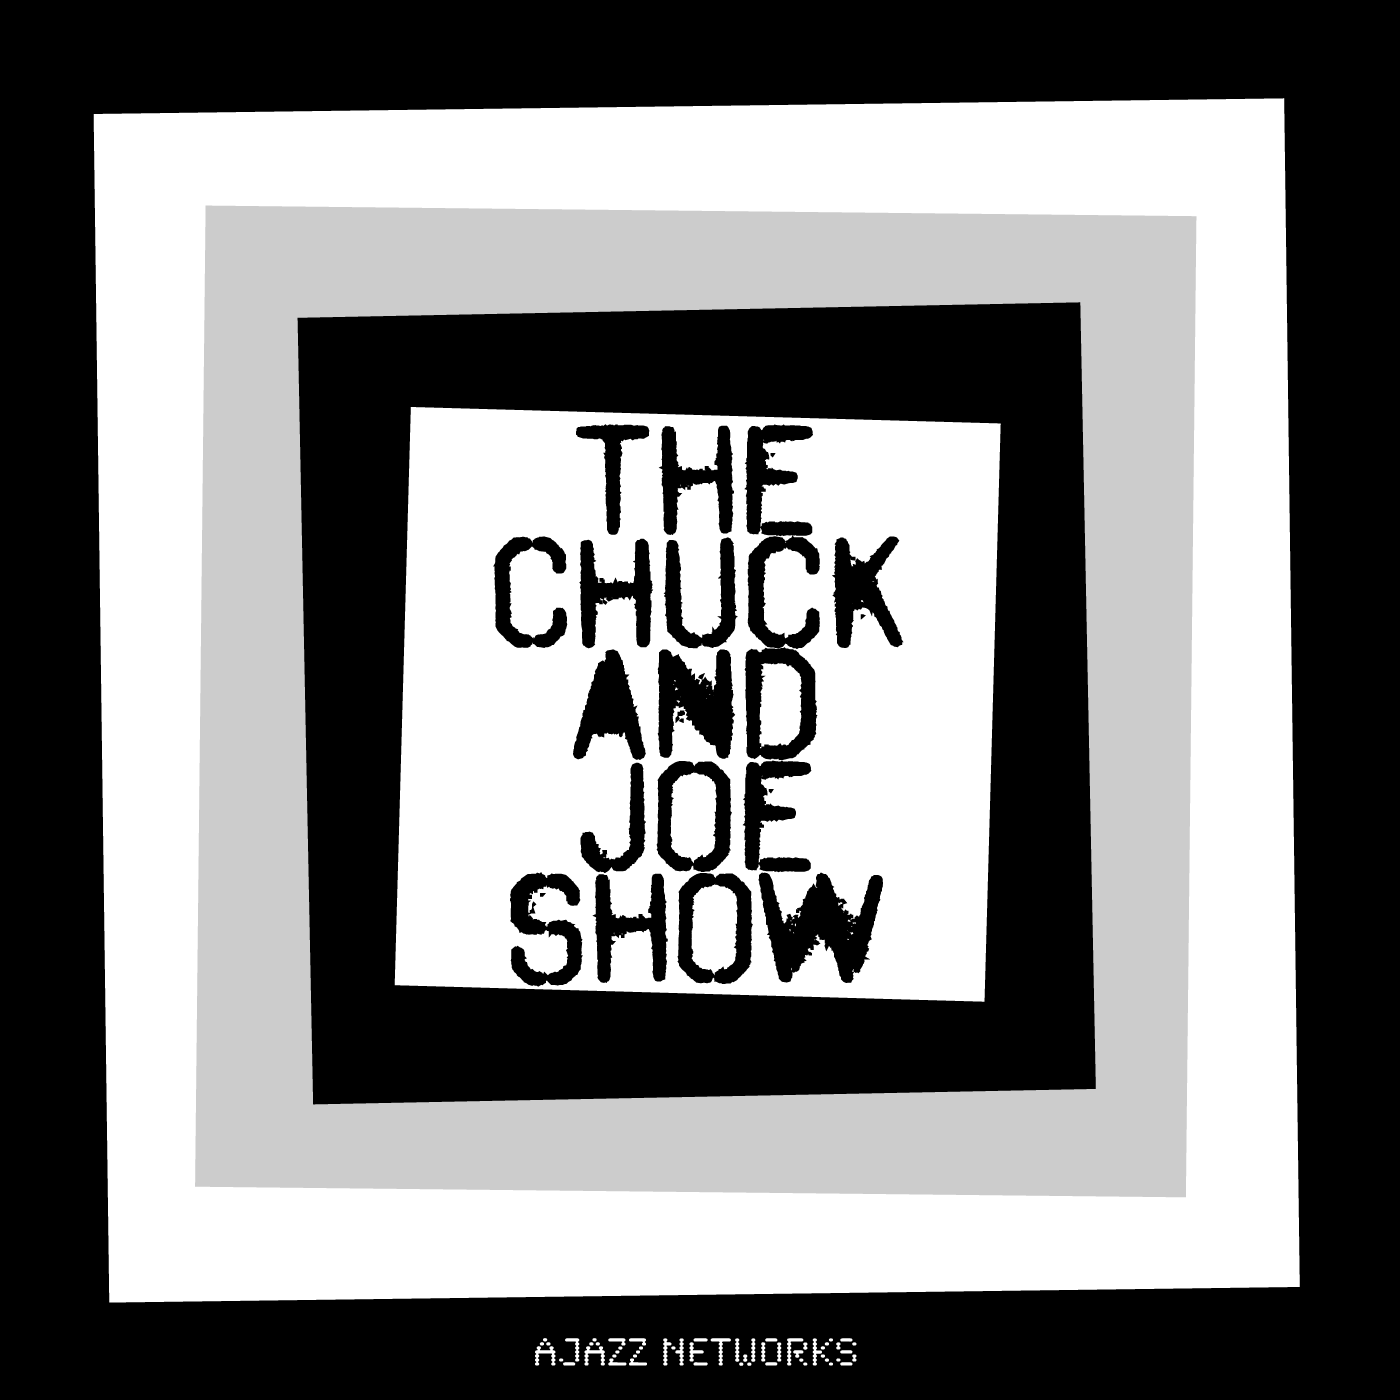 The Chuck and Joe Showl